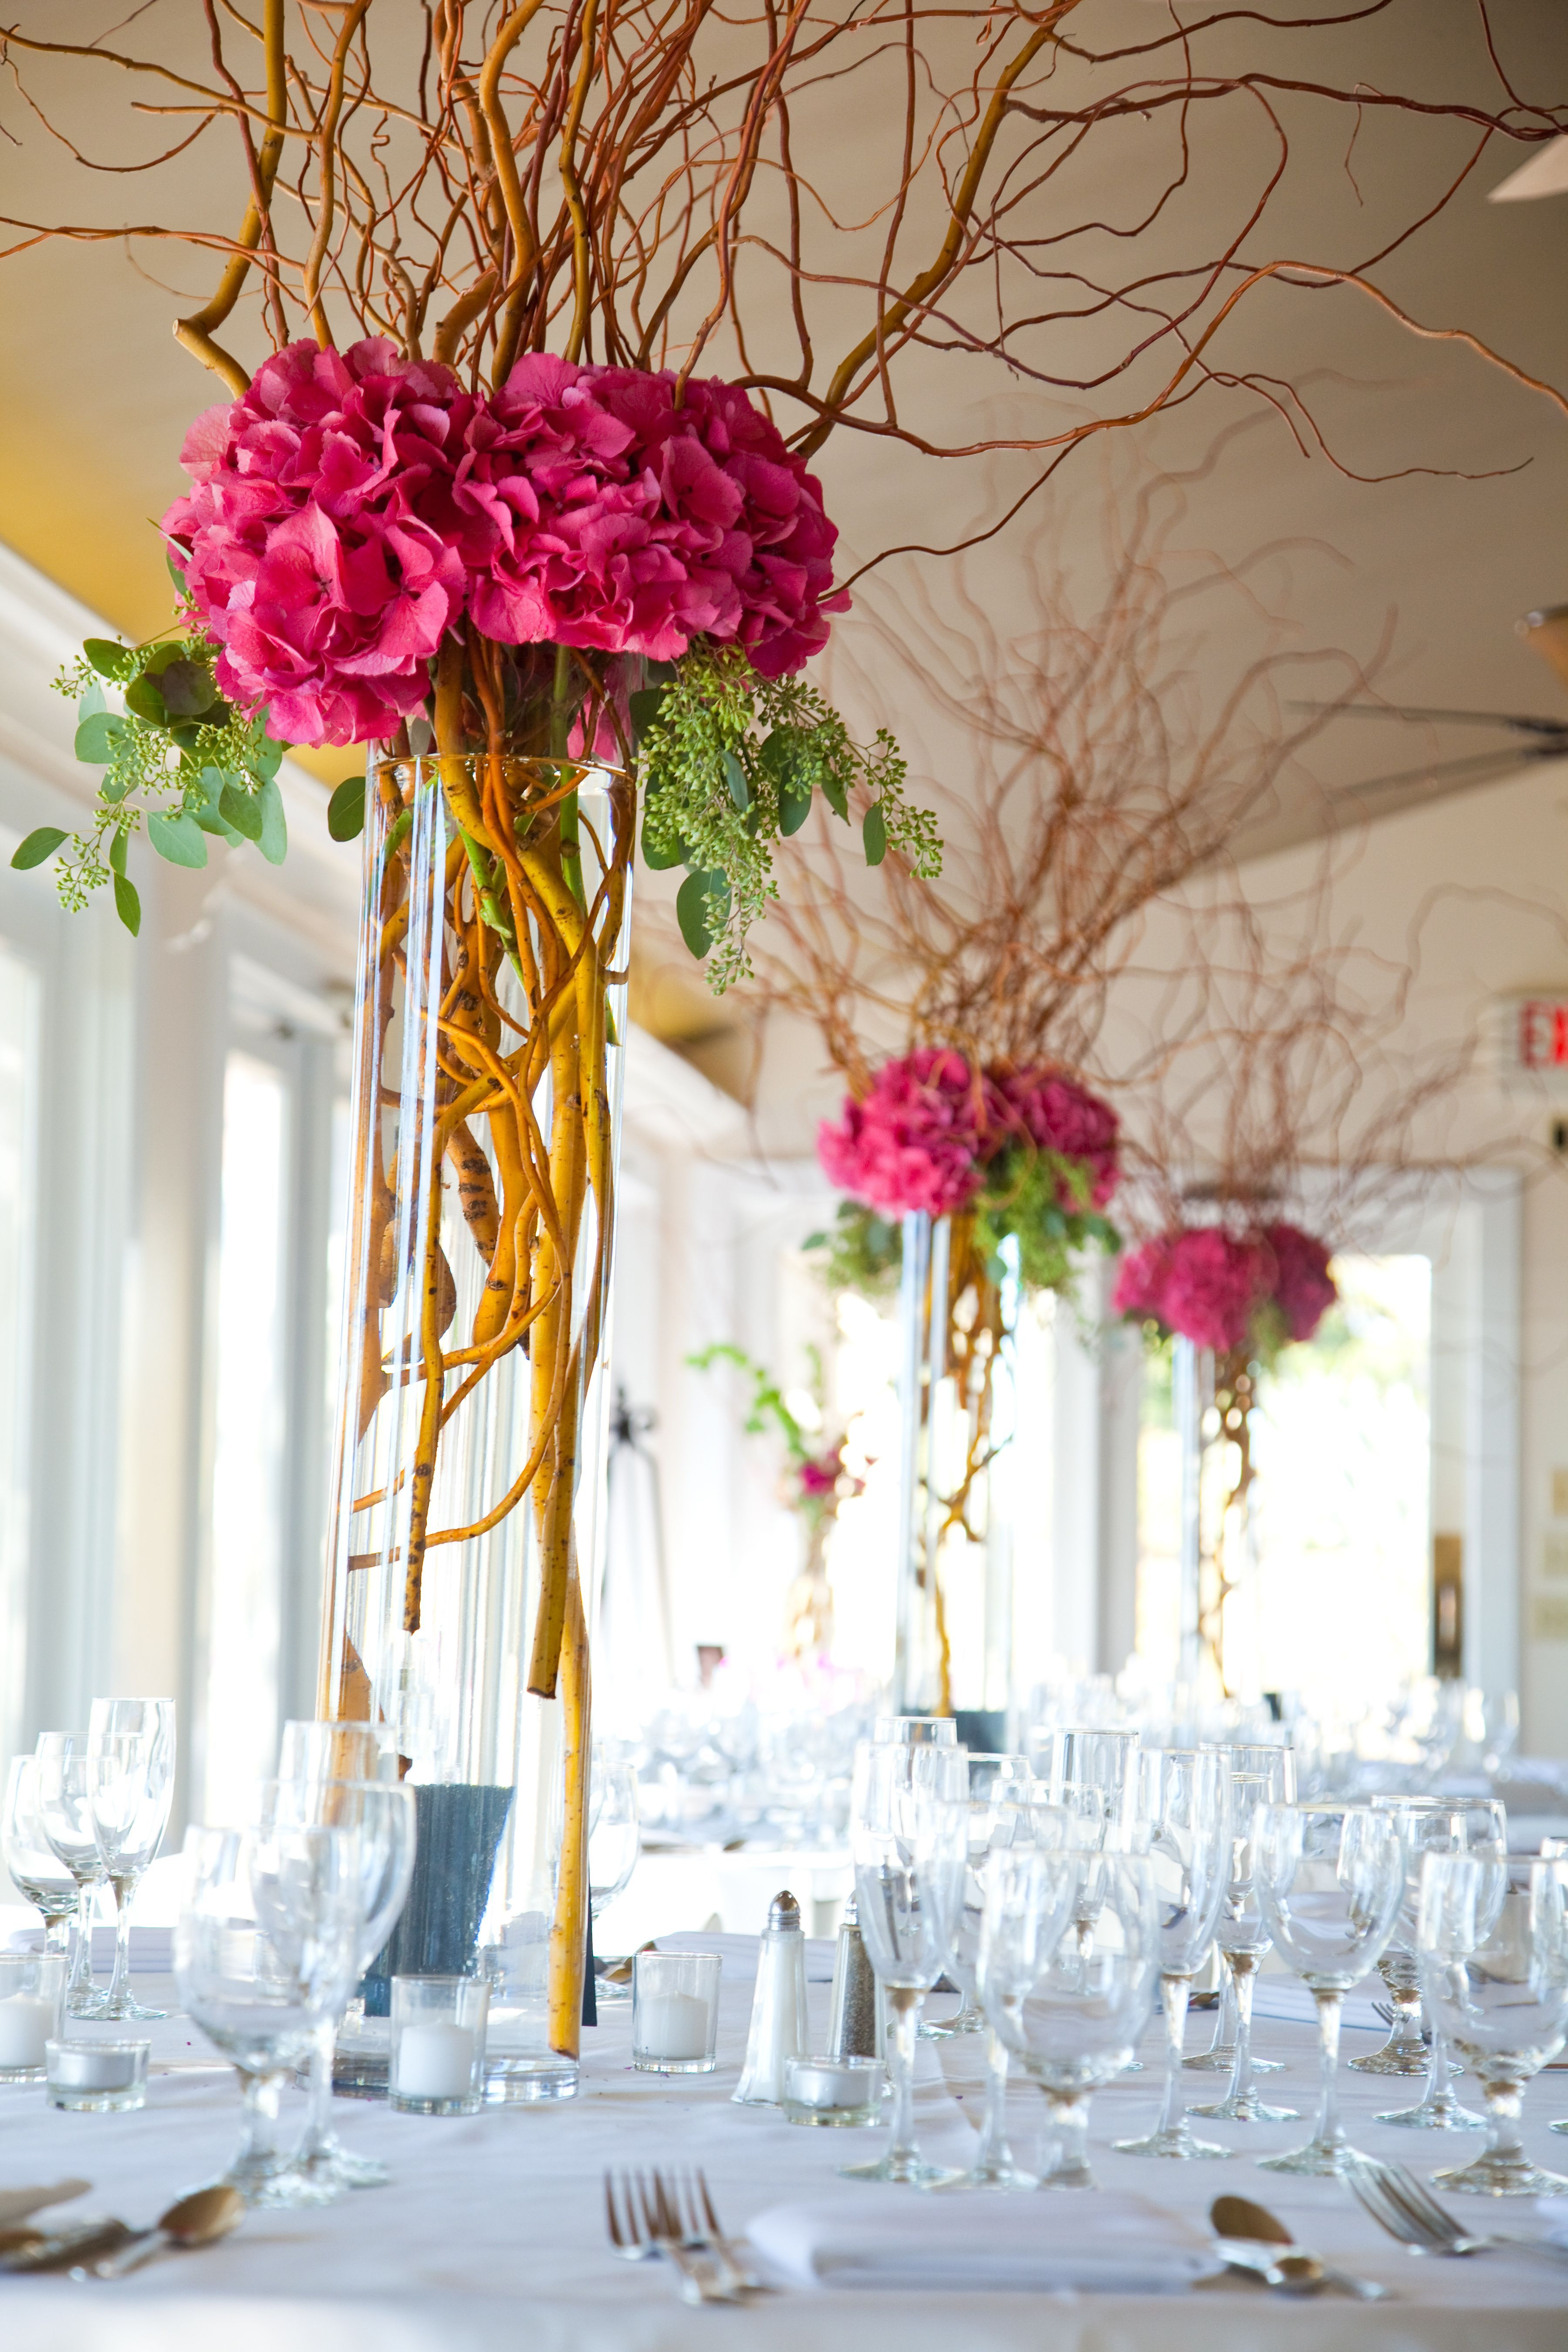 Hydrangeas and curly willow fabulous spaces pinterest